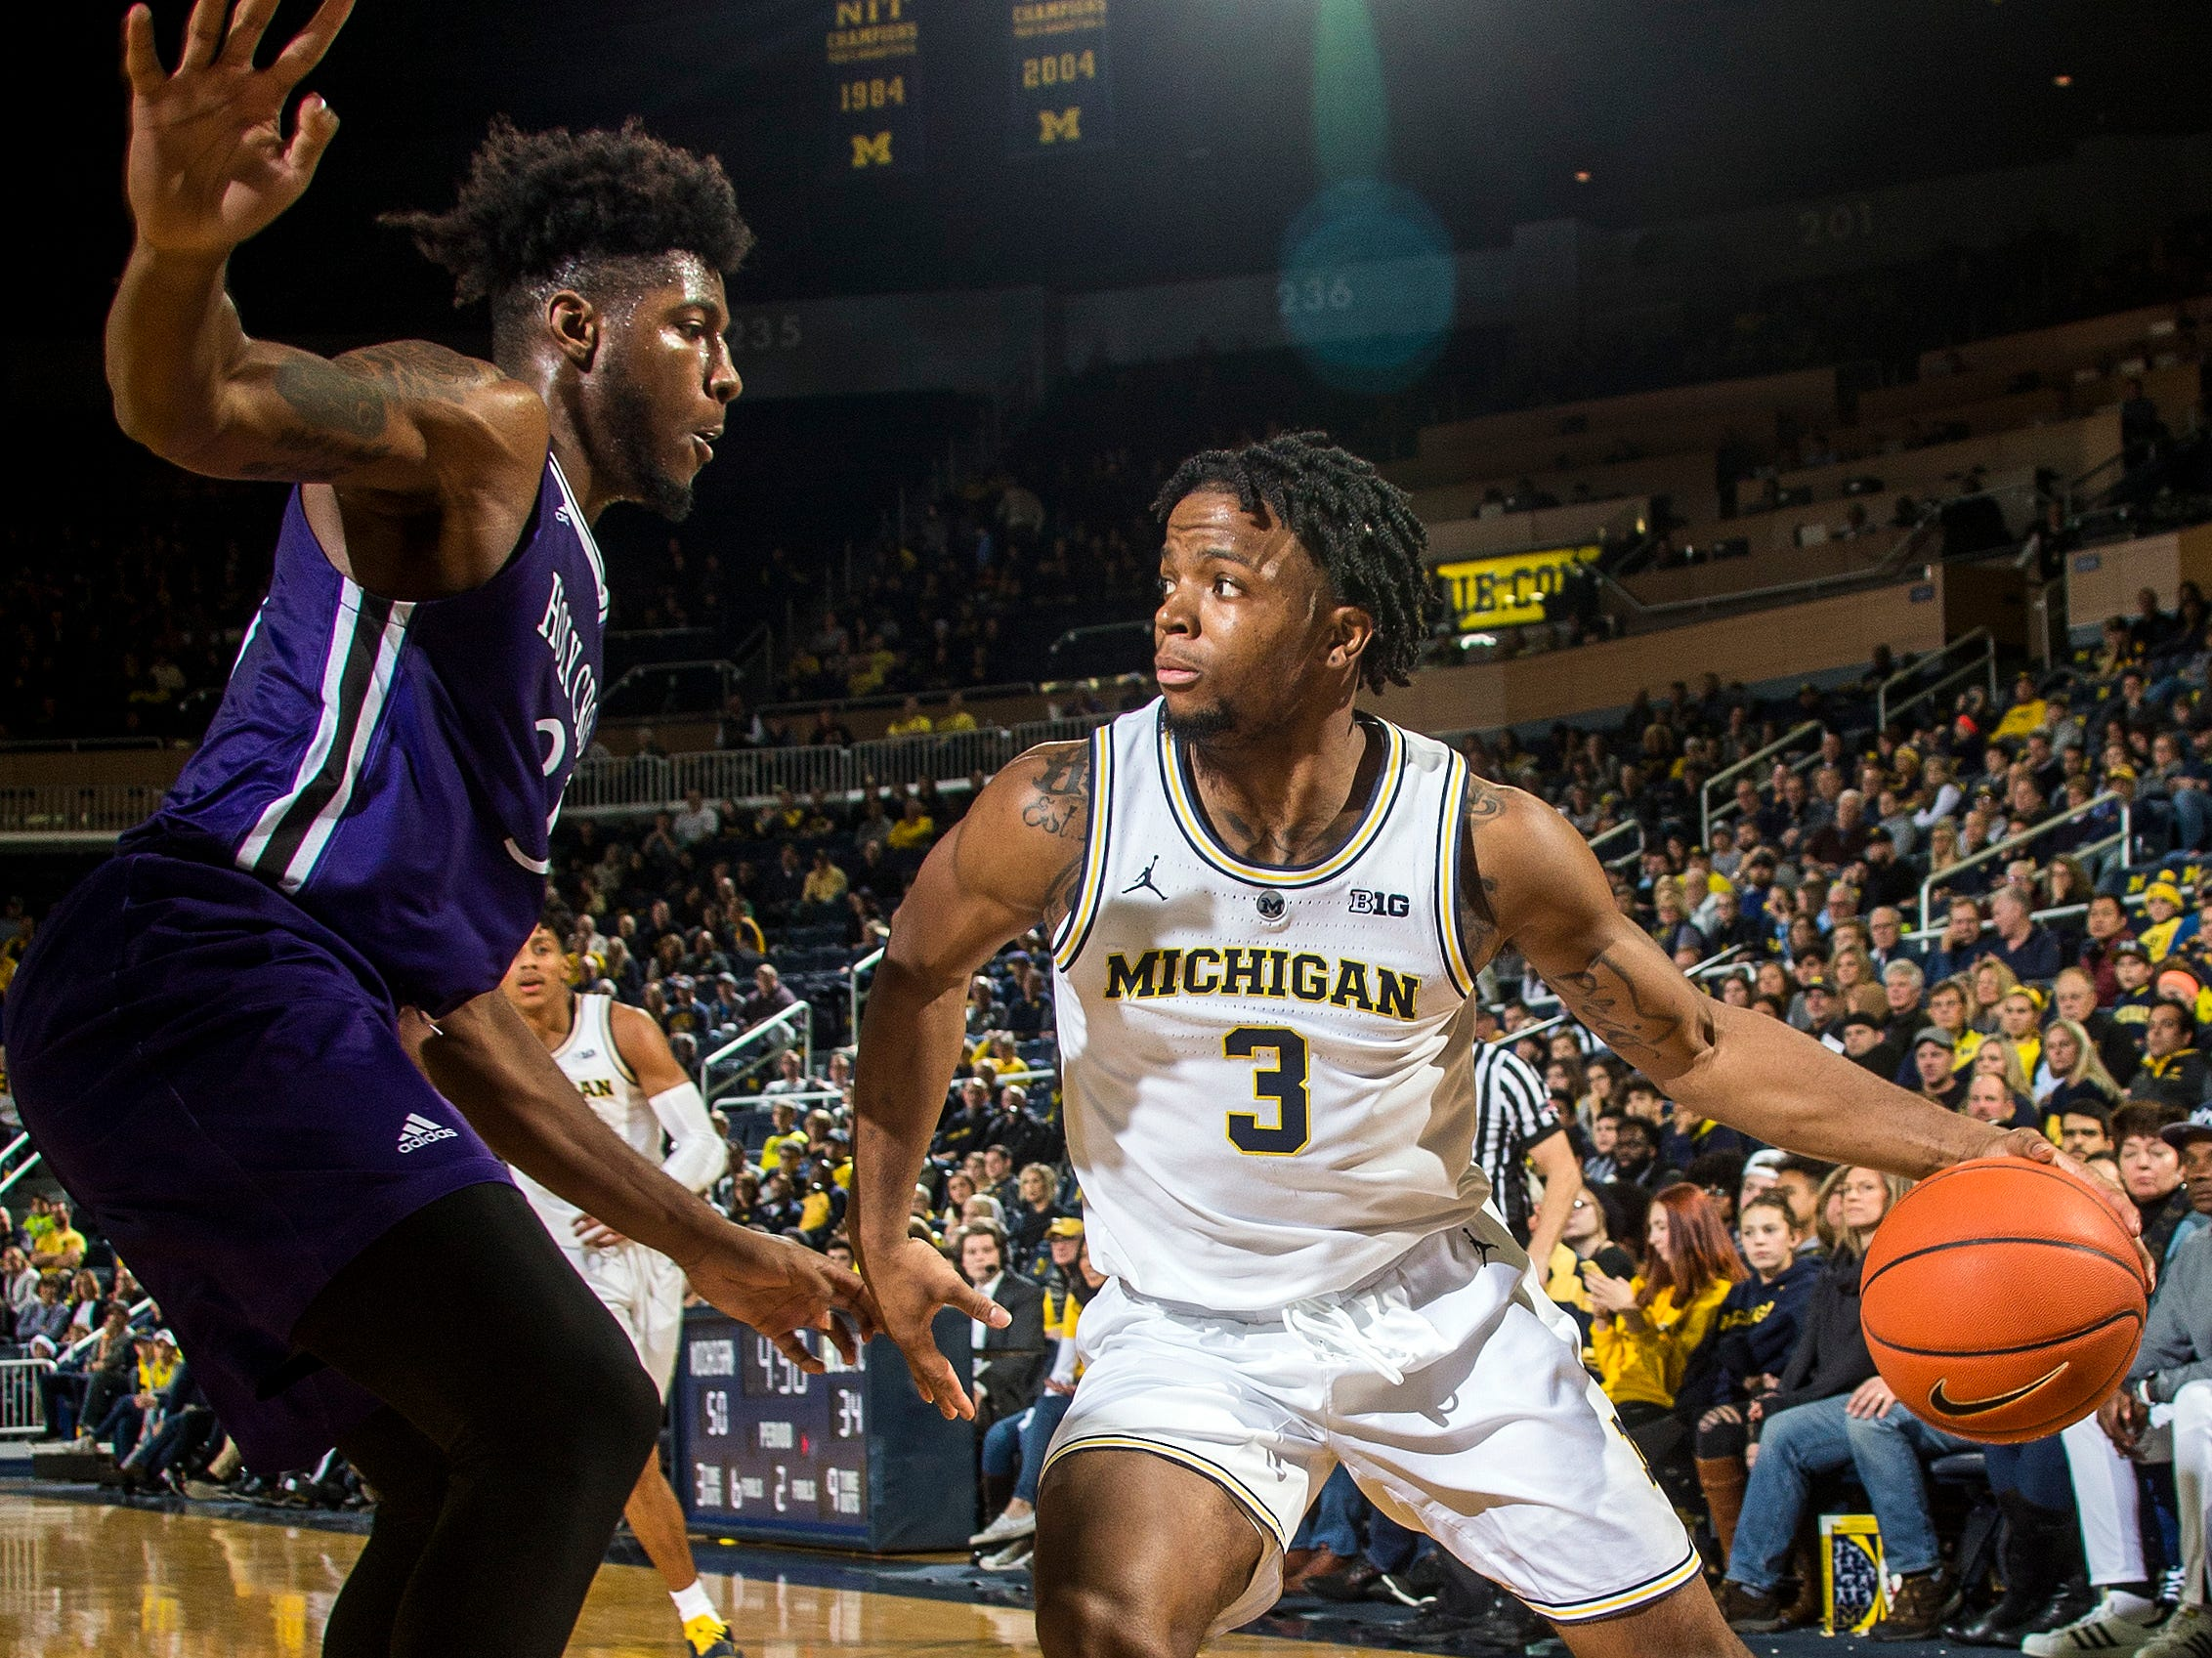 Holy Cross forward Jehyve Floyd, left, defends against Michigan guard Zavier Simpson (3), in the second half of an NCAA college basketball game at Crisler Center in Ann Arbor, Mich., Saturday, Nov. 10, 2018. (AP Photo/Tony Ding)